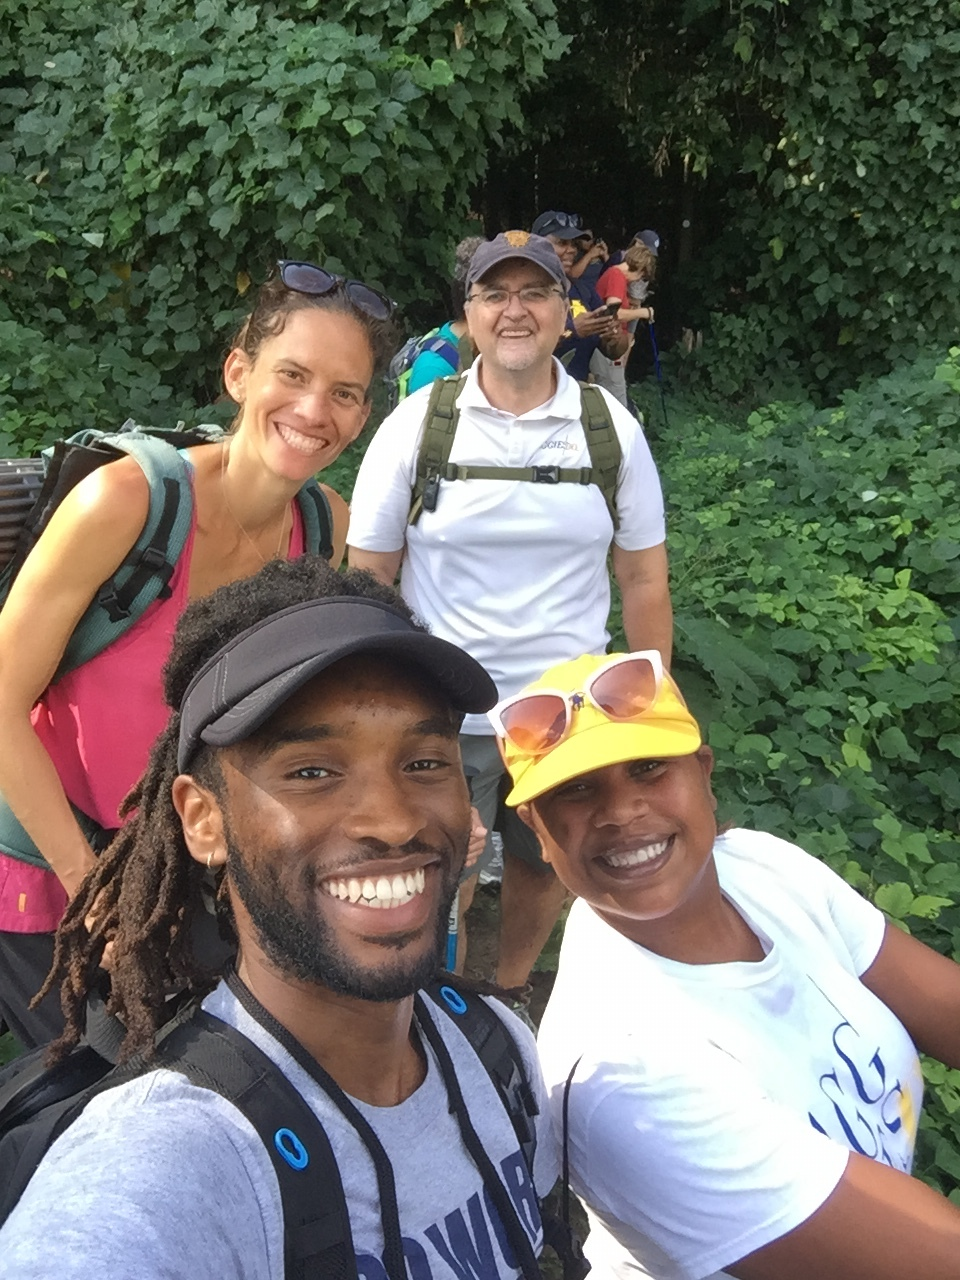 Joining National Geographic Explorer, Jennifer Pharr-Davis, to hike the Mountains-to-Sea Trail portion near Lake Brandt, Greensboro, NC